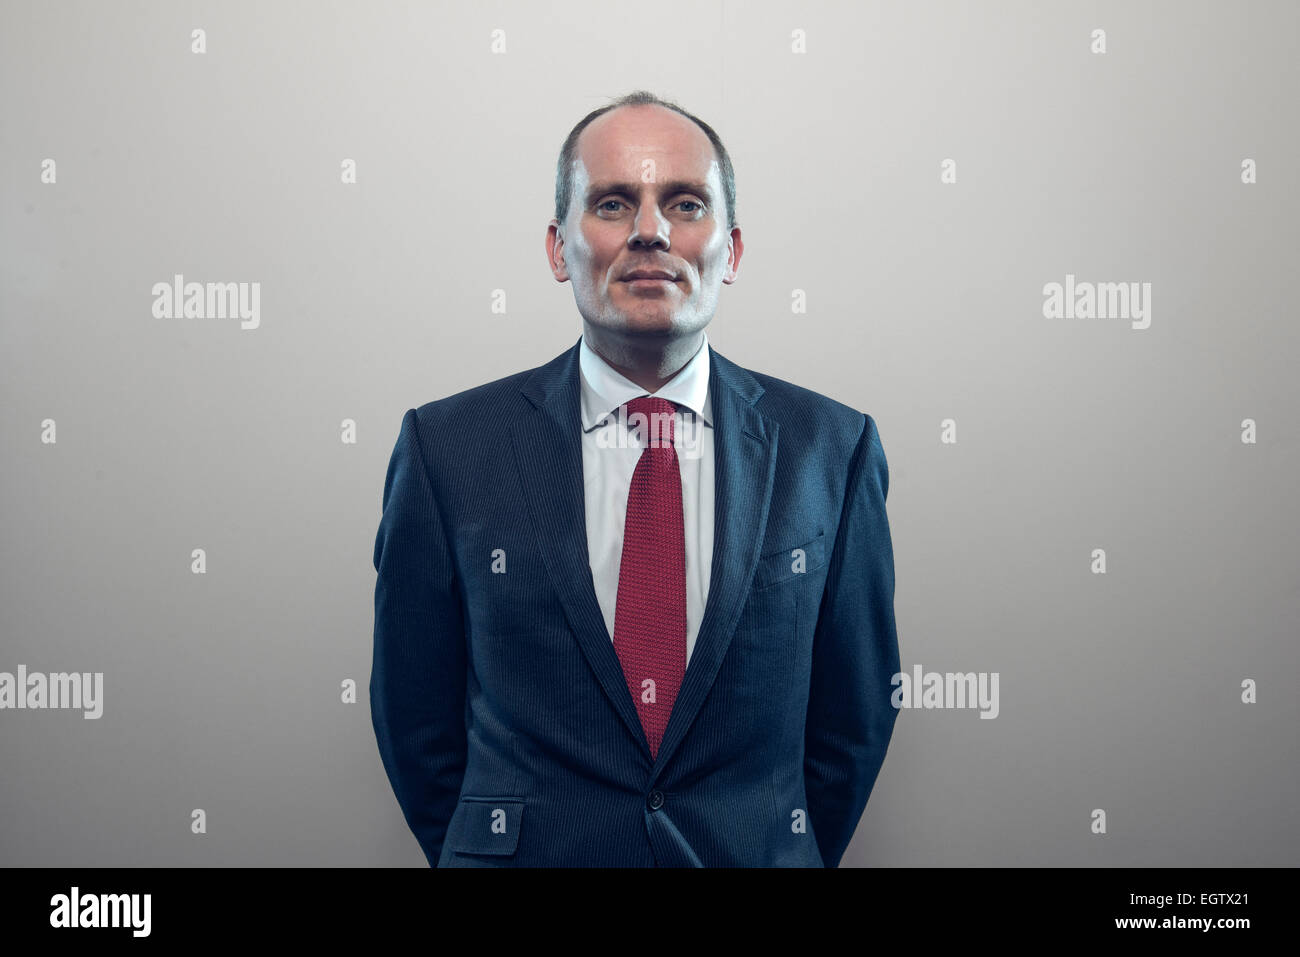 environmental portrait of businessman executive director in a suit lit in a creative way to imply technology & advancement Stock Photo